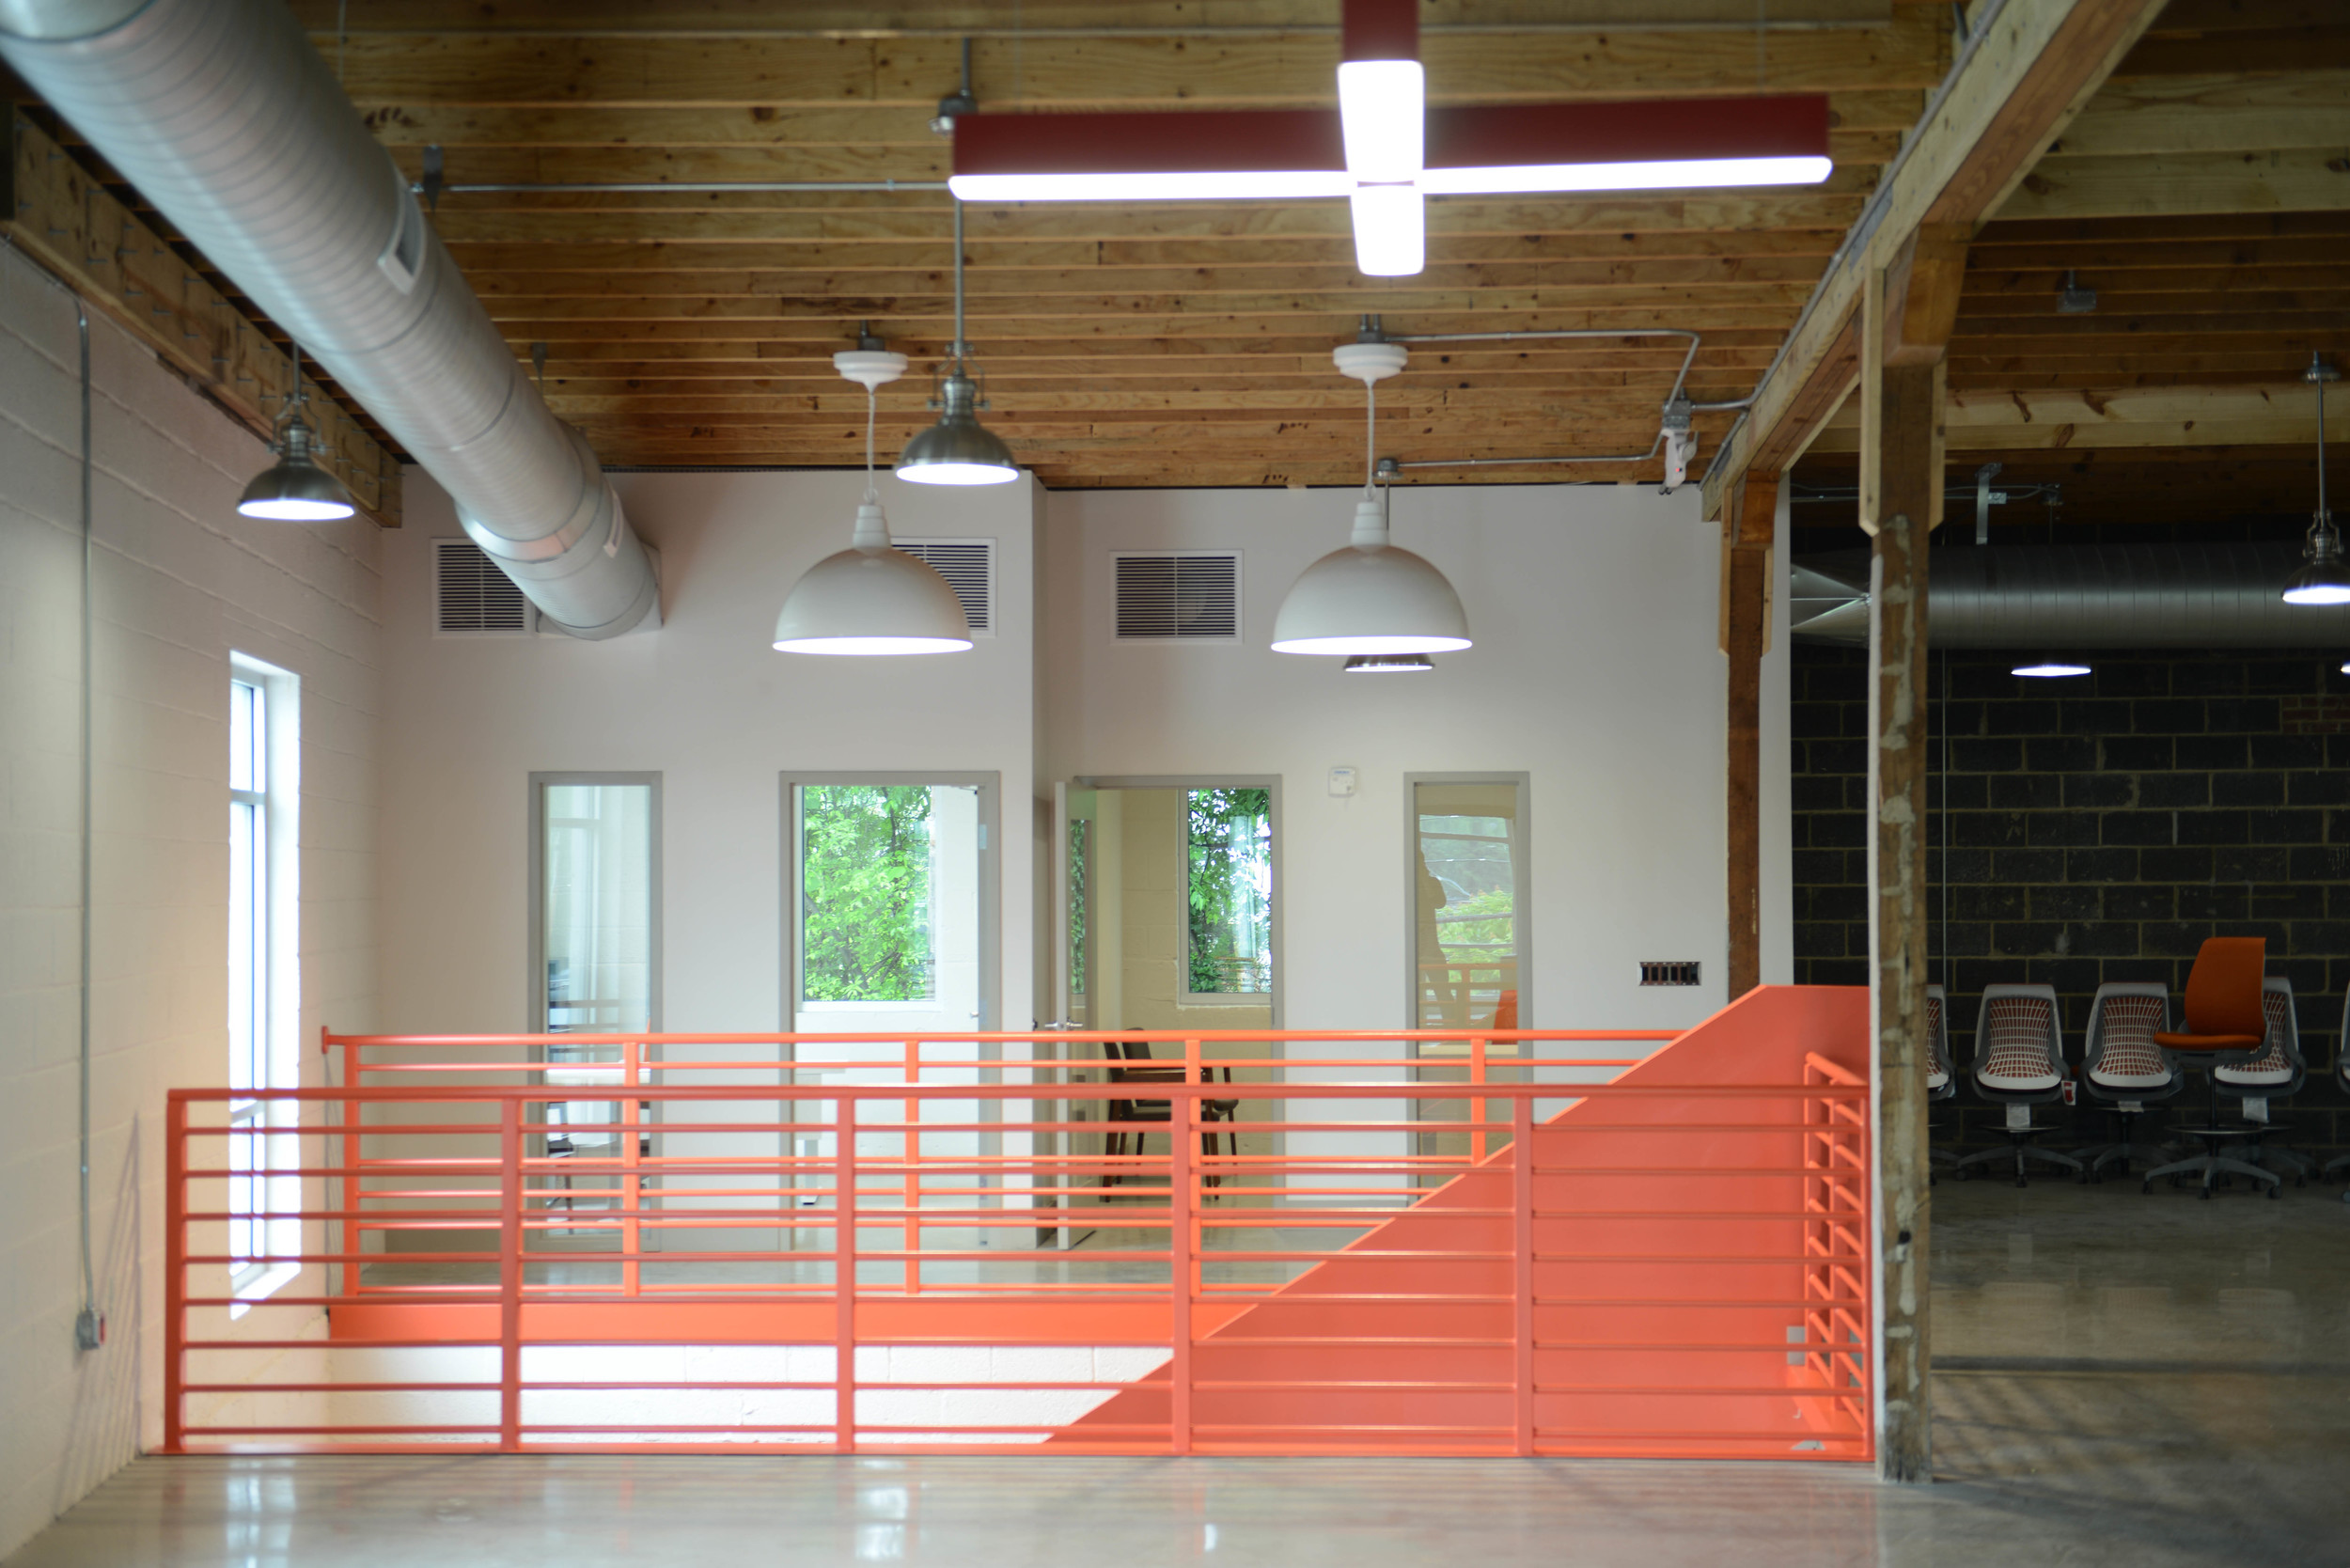 Maurer_Architecture-500W_Peace_Street (27 of 45).jpg